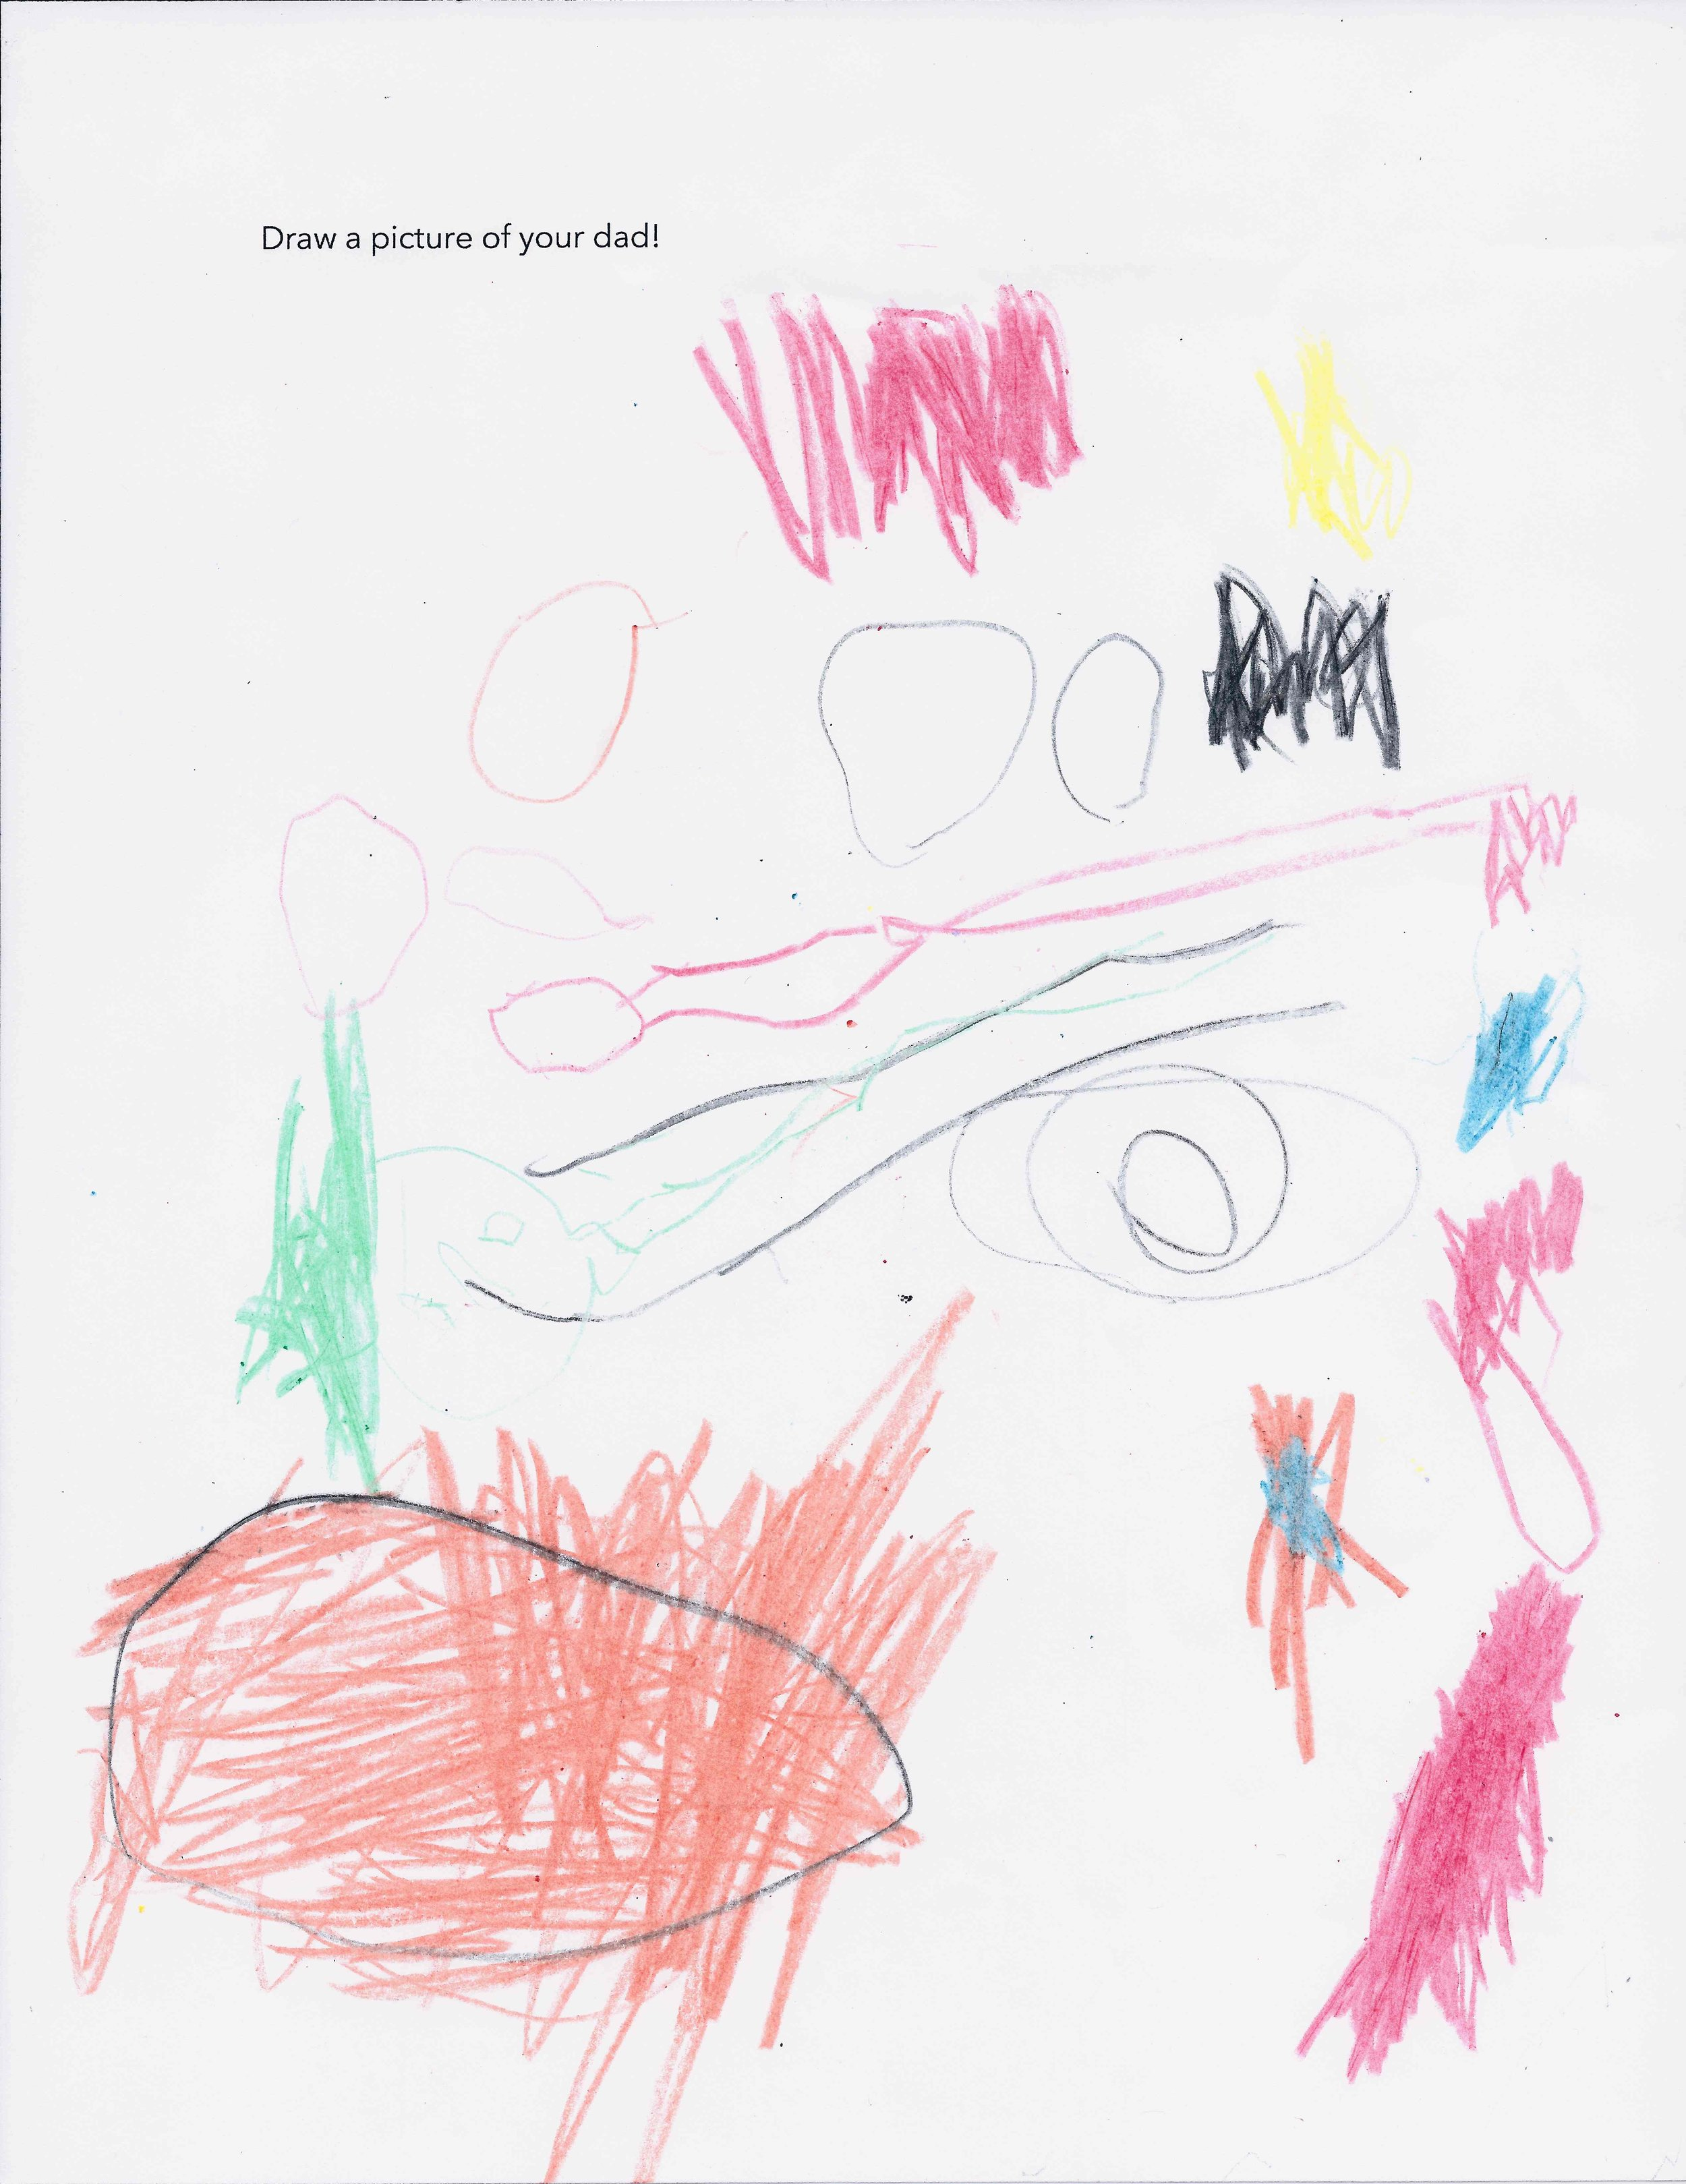 kingston's drawing of his father. and a carrot.